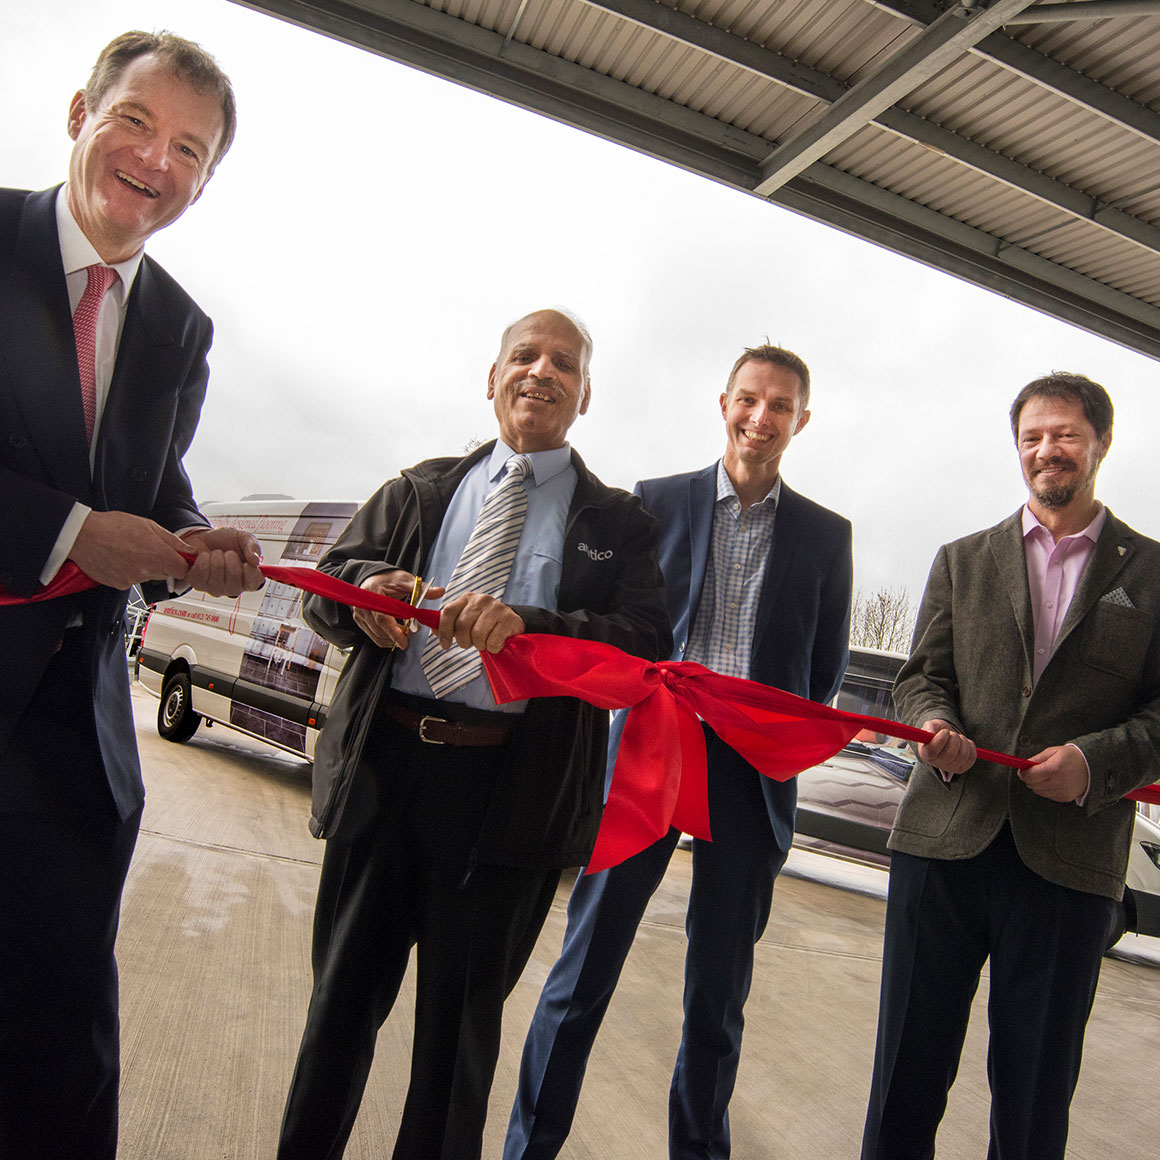 Amtico officially open Pilot Park showpiece facility